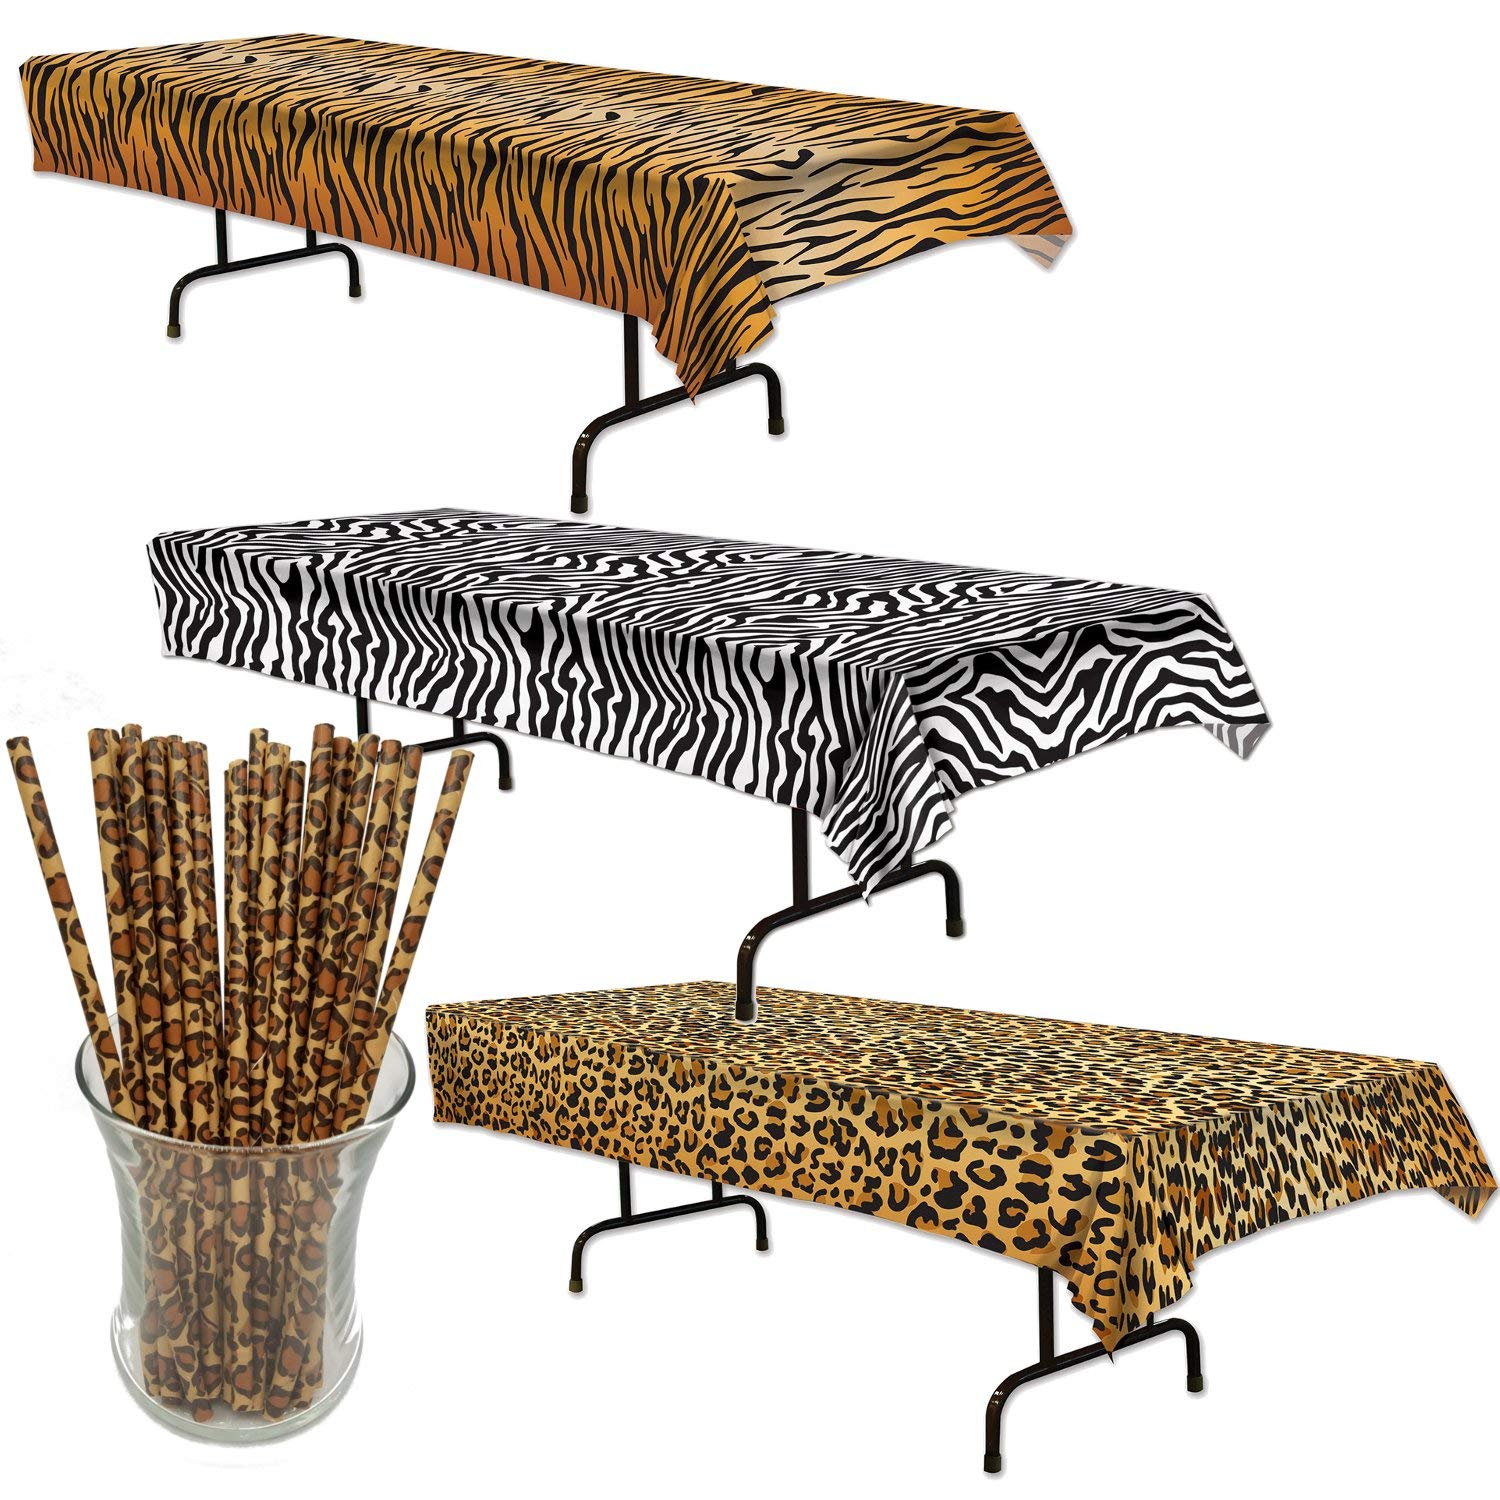 225 & Cheap Animal Print Table Cover find Animal Print Table ...